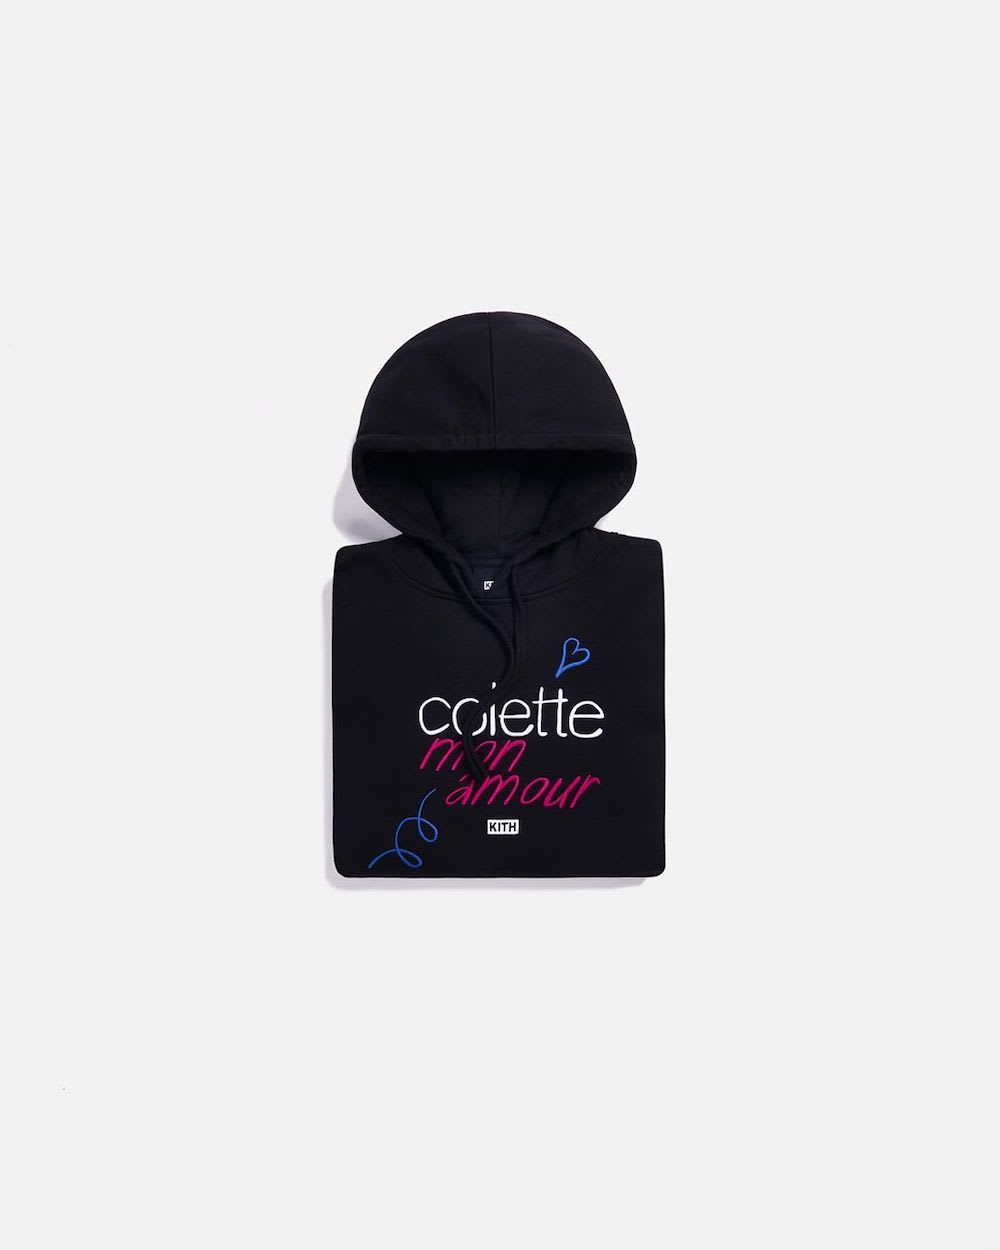 Complex Best Style Releases Kith Ronnie Fieg Colette Mon Amour Hoodie